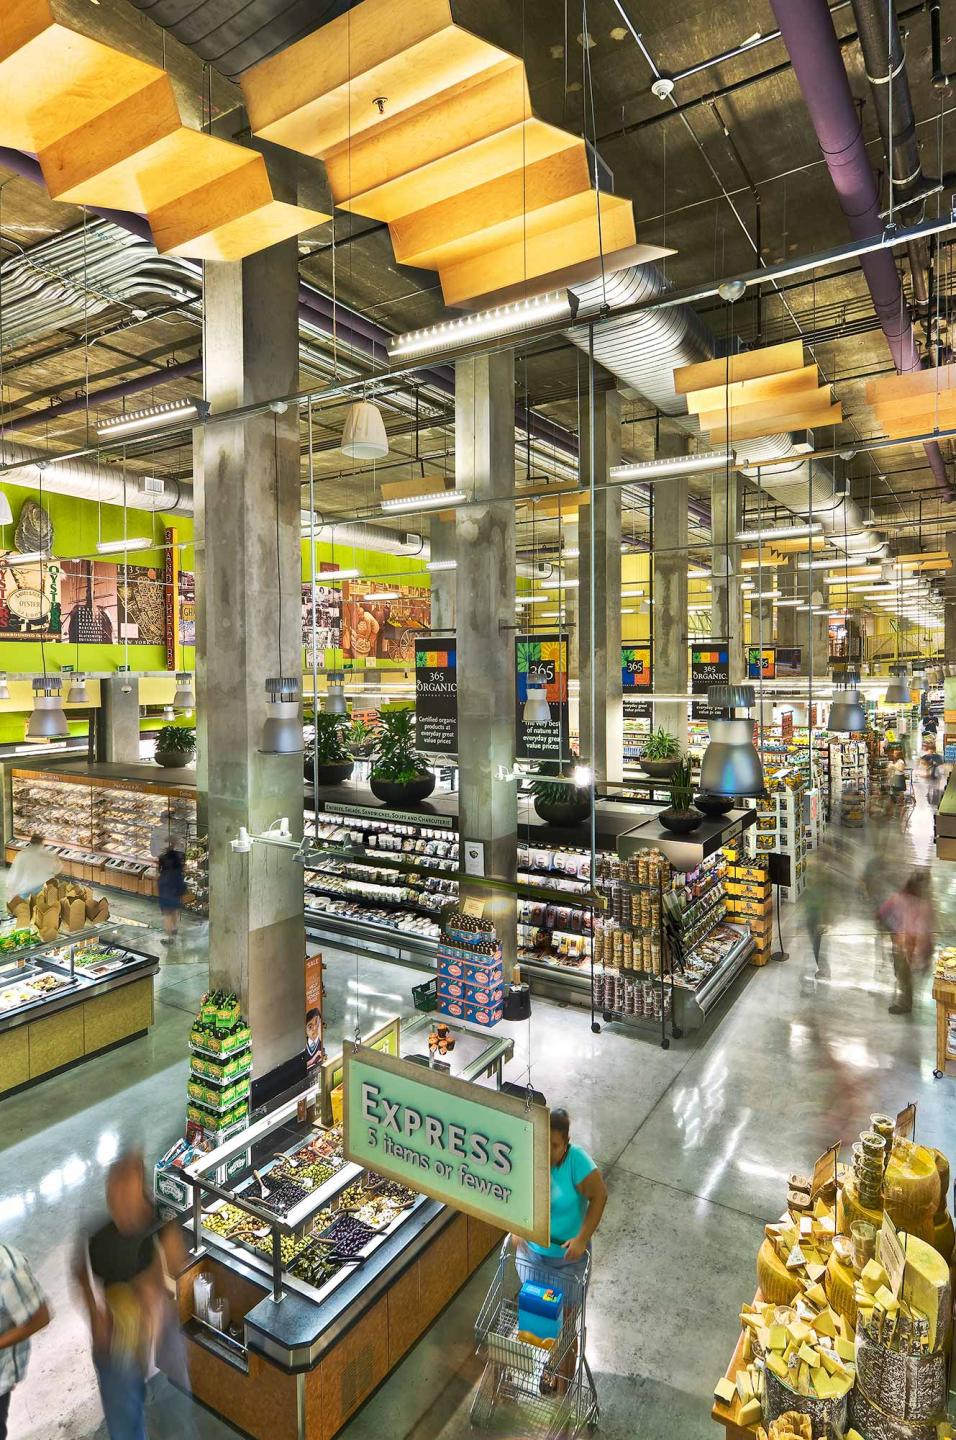 Whole Foods Market located on Houston St., NYC with interior design by SBLM in NYC and Bottinogrund in Austin, Texas. Client requested wide view and to have people interacting in the space. : Whole Foods Market : New York NY Architectural Photographer | Interior and Exterior